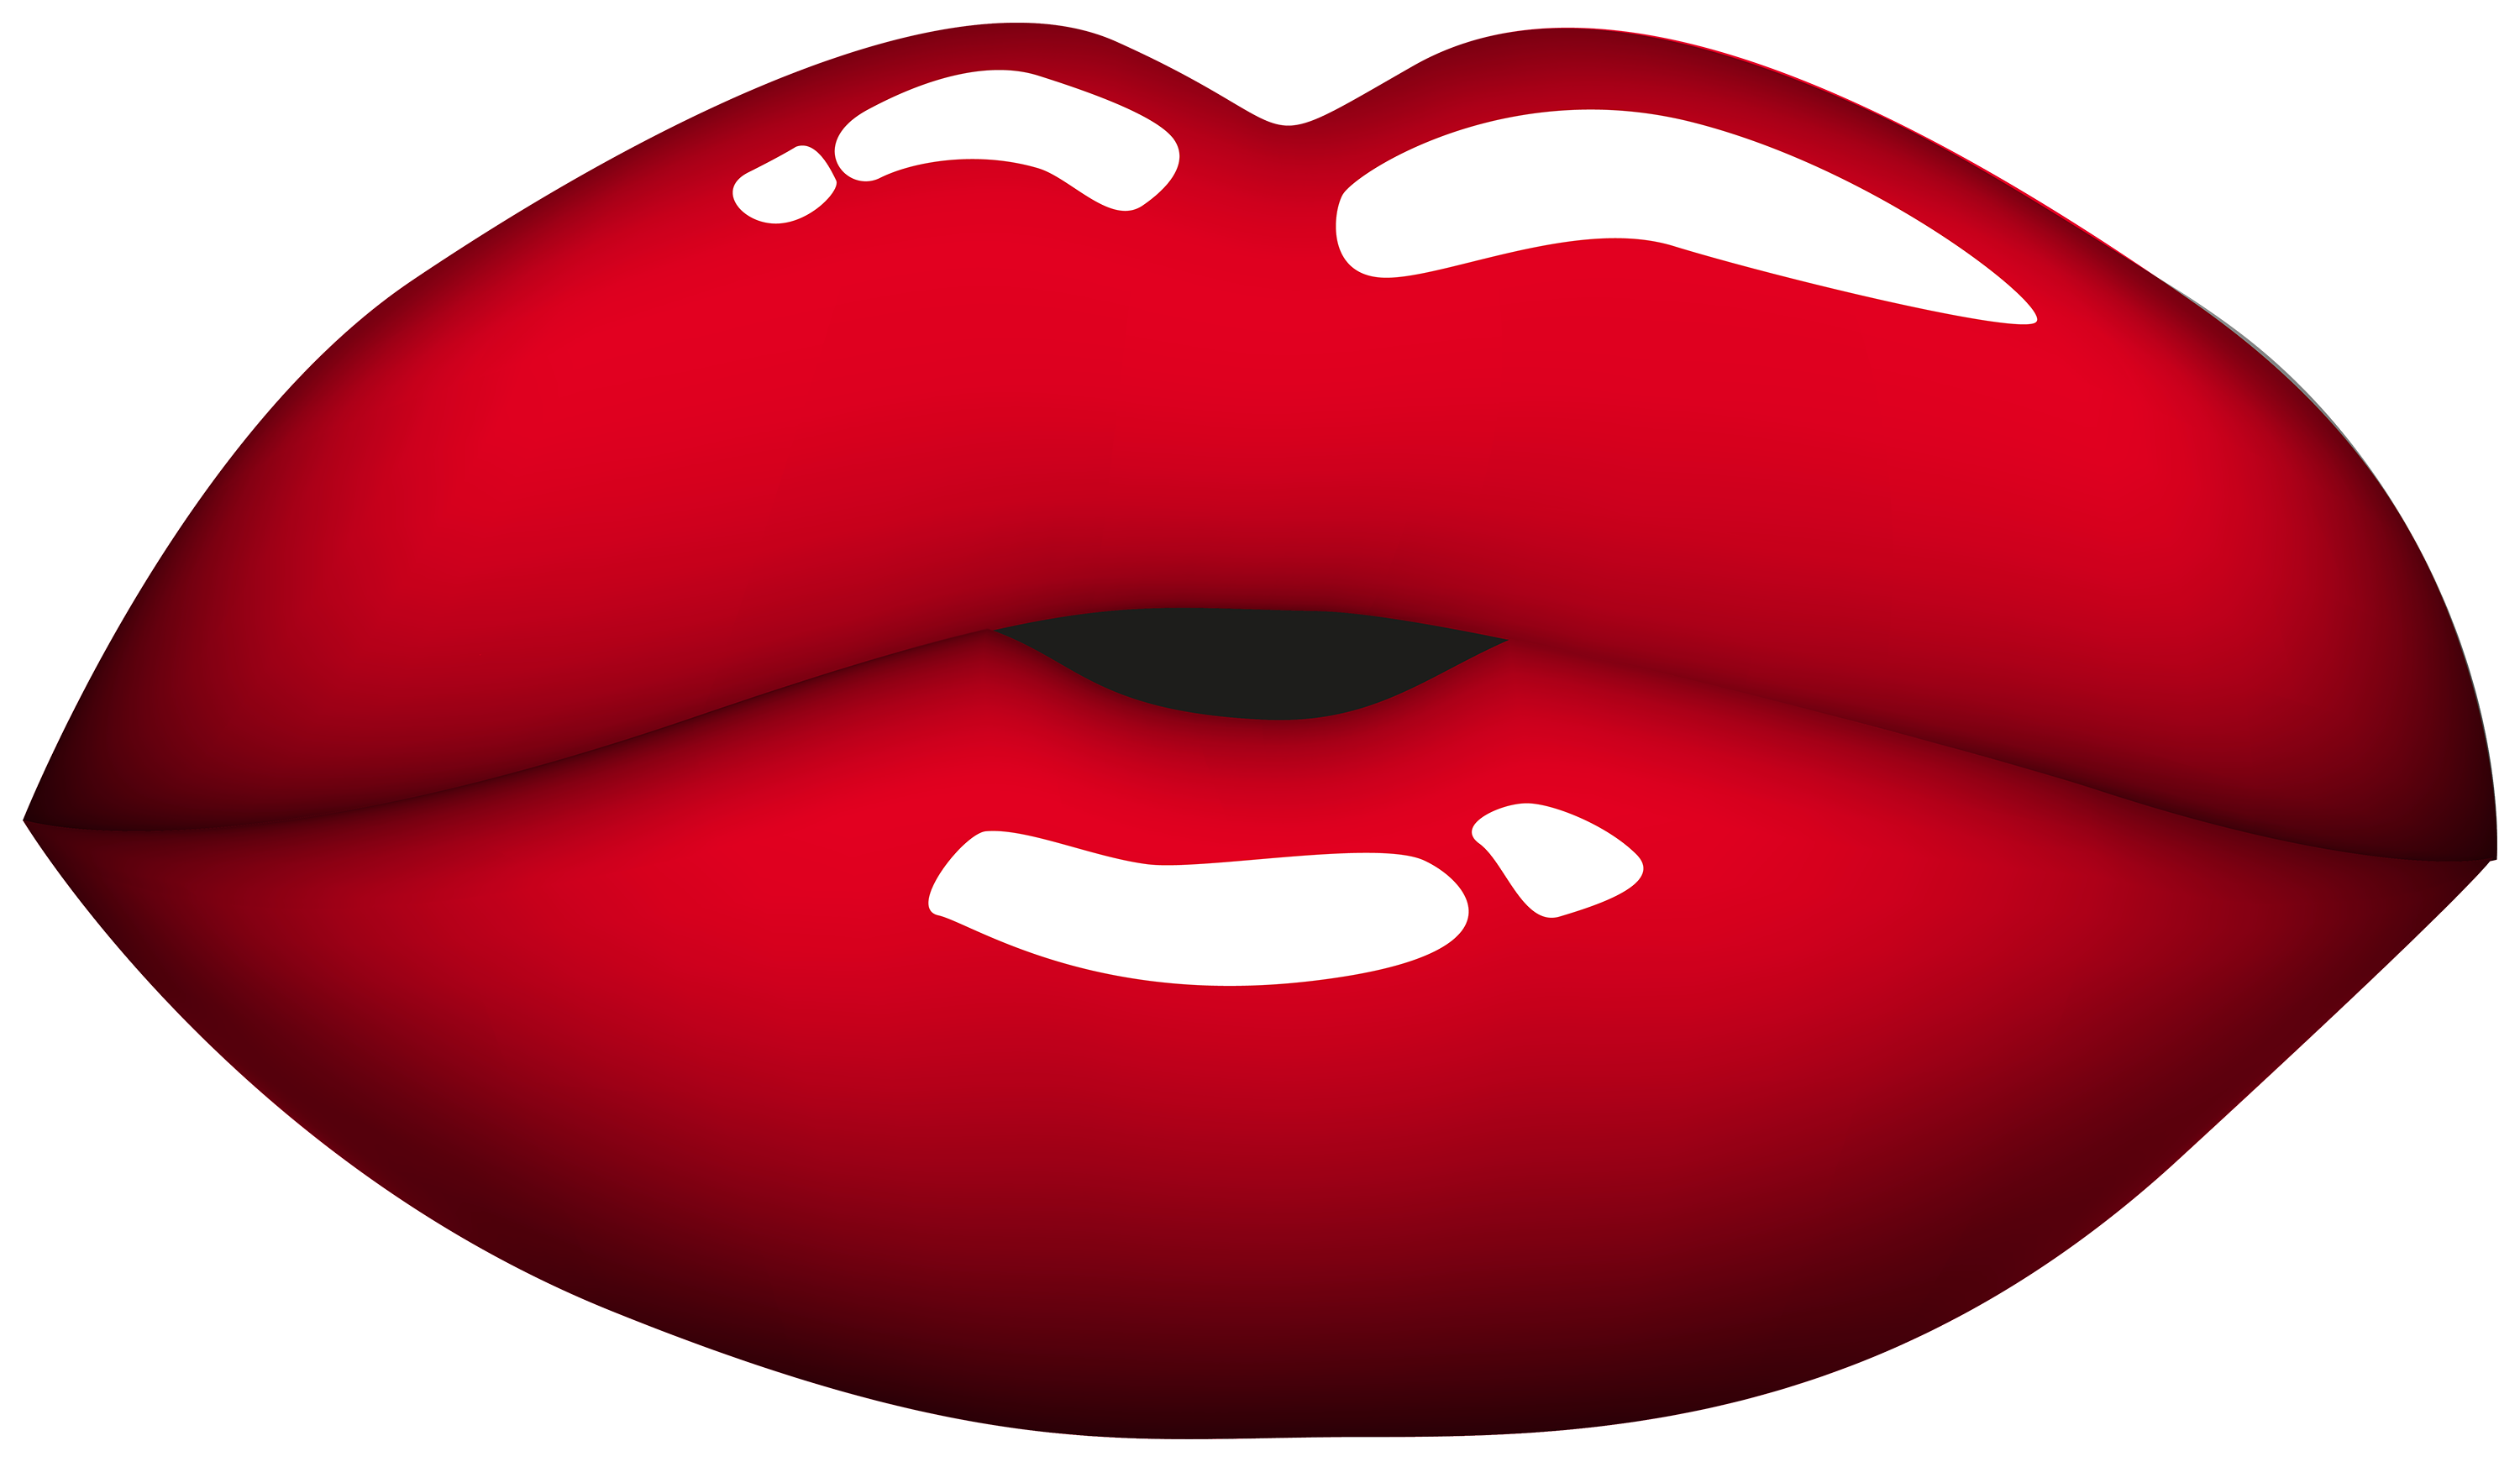 Kiss clipart glossy lip. Red mouth png best